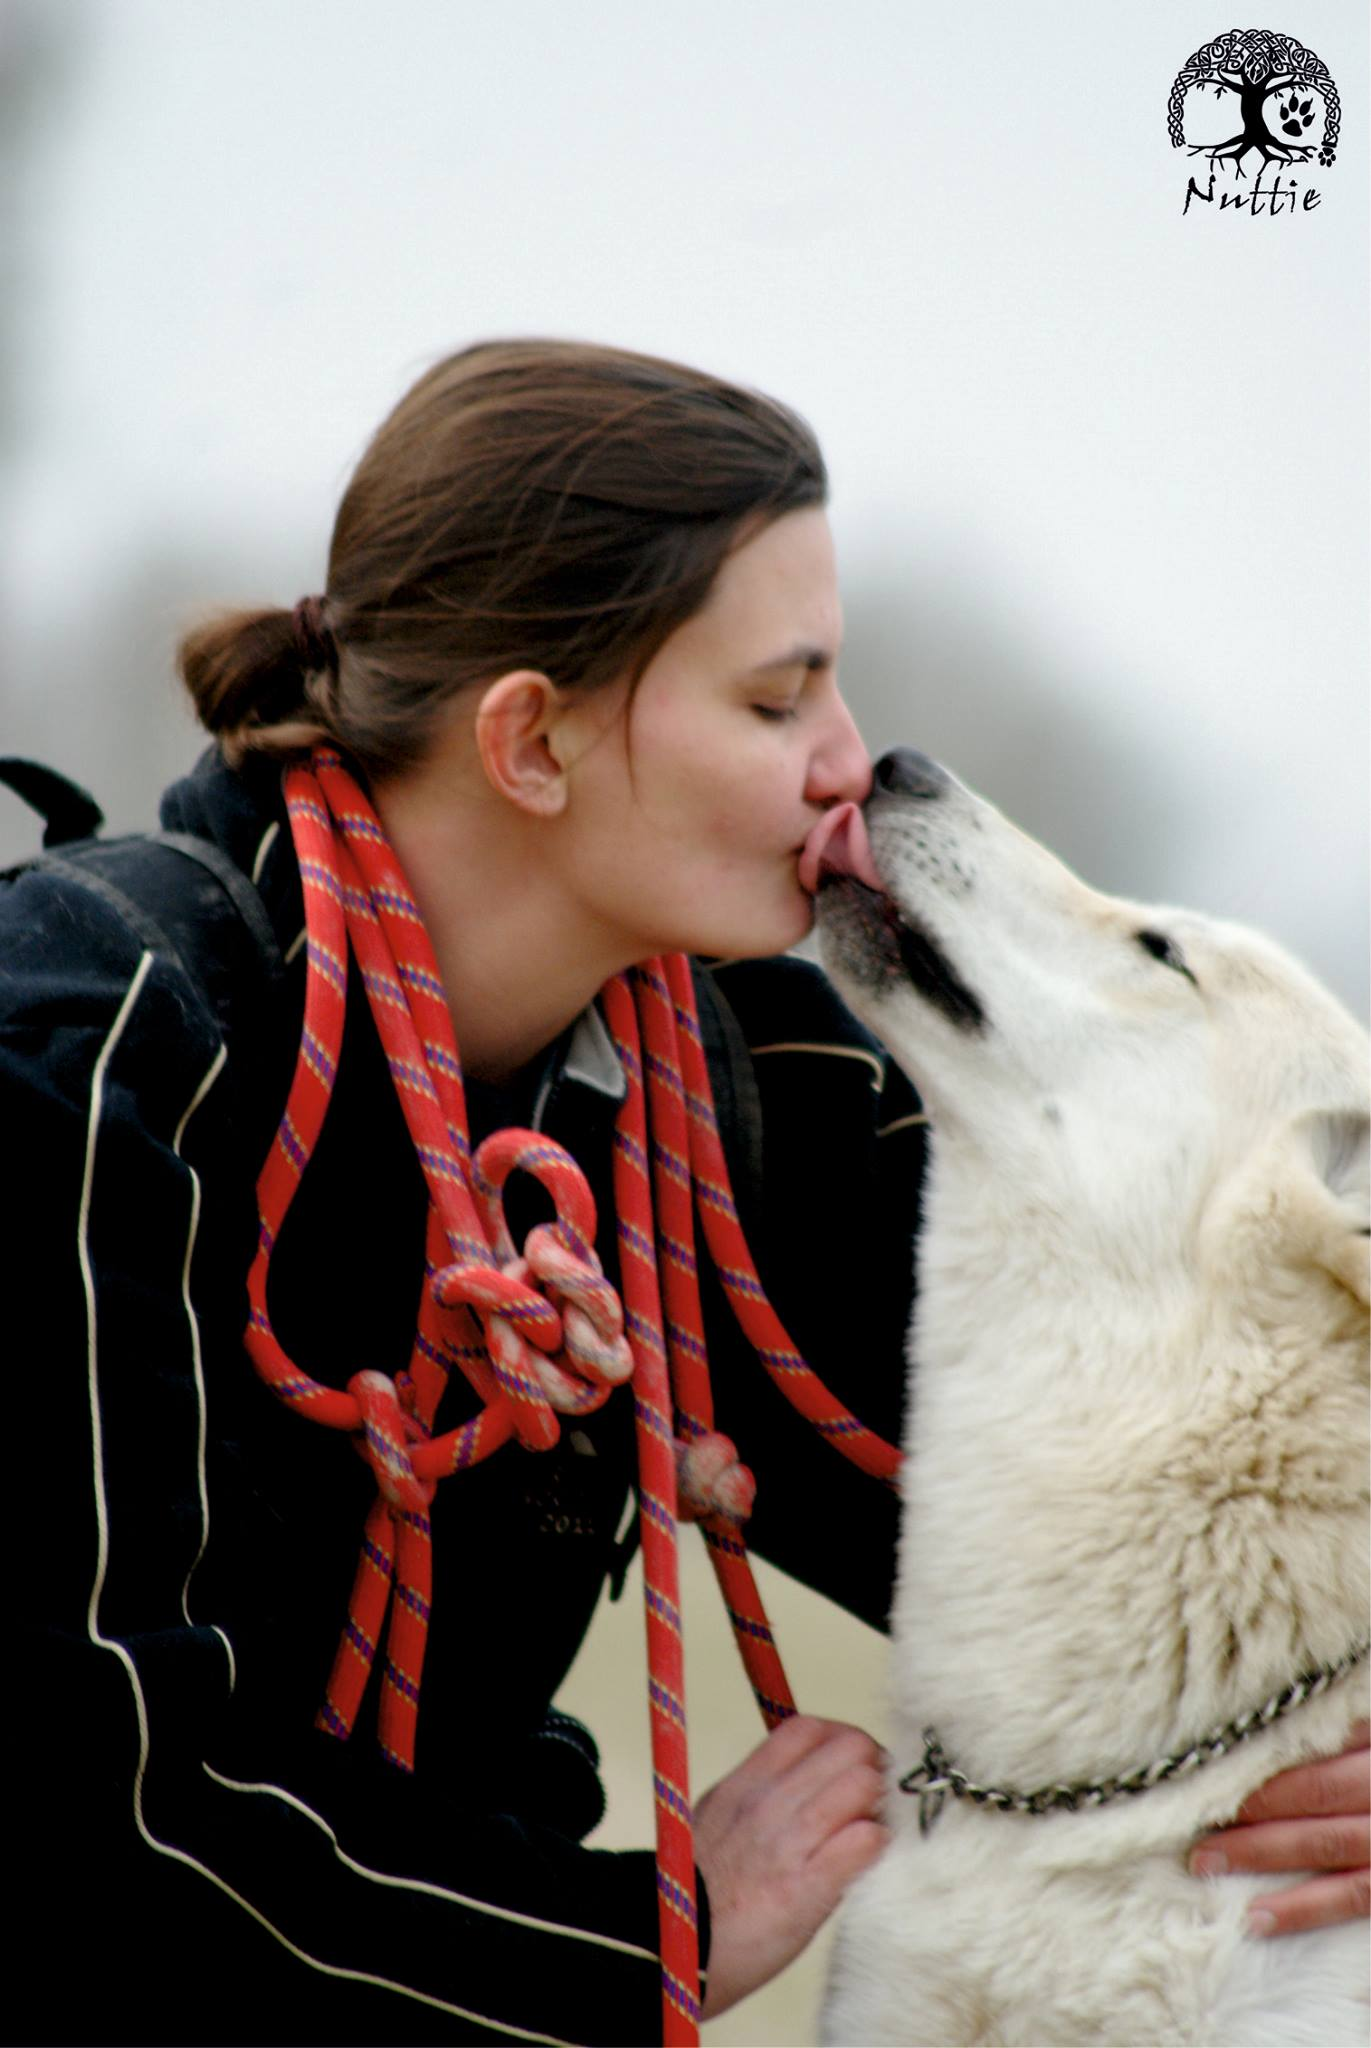 chiens-loups-condamne-france-31